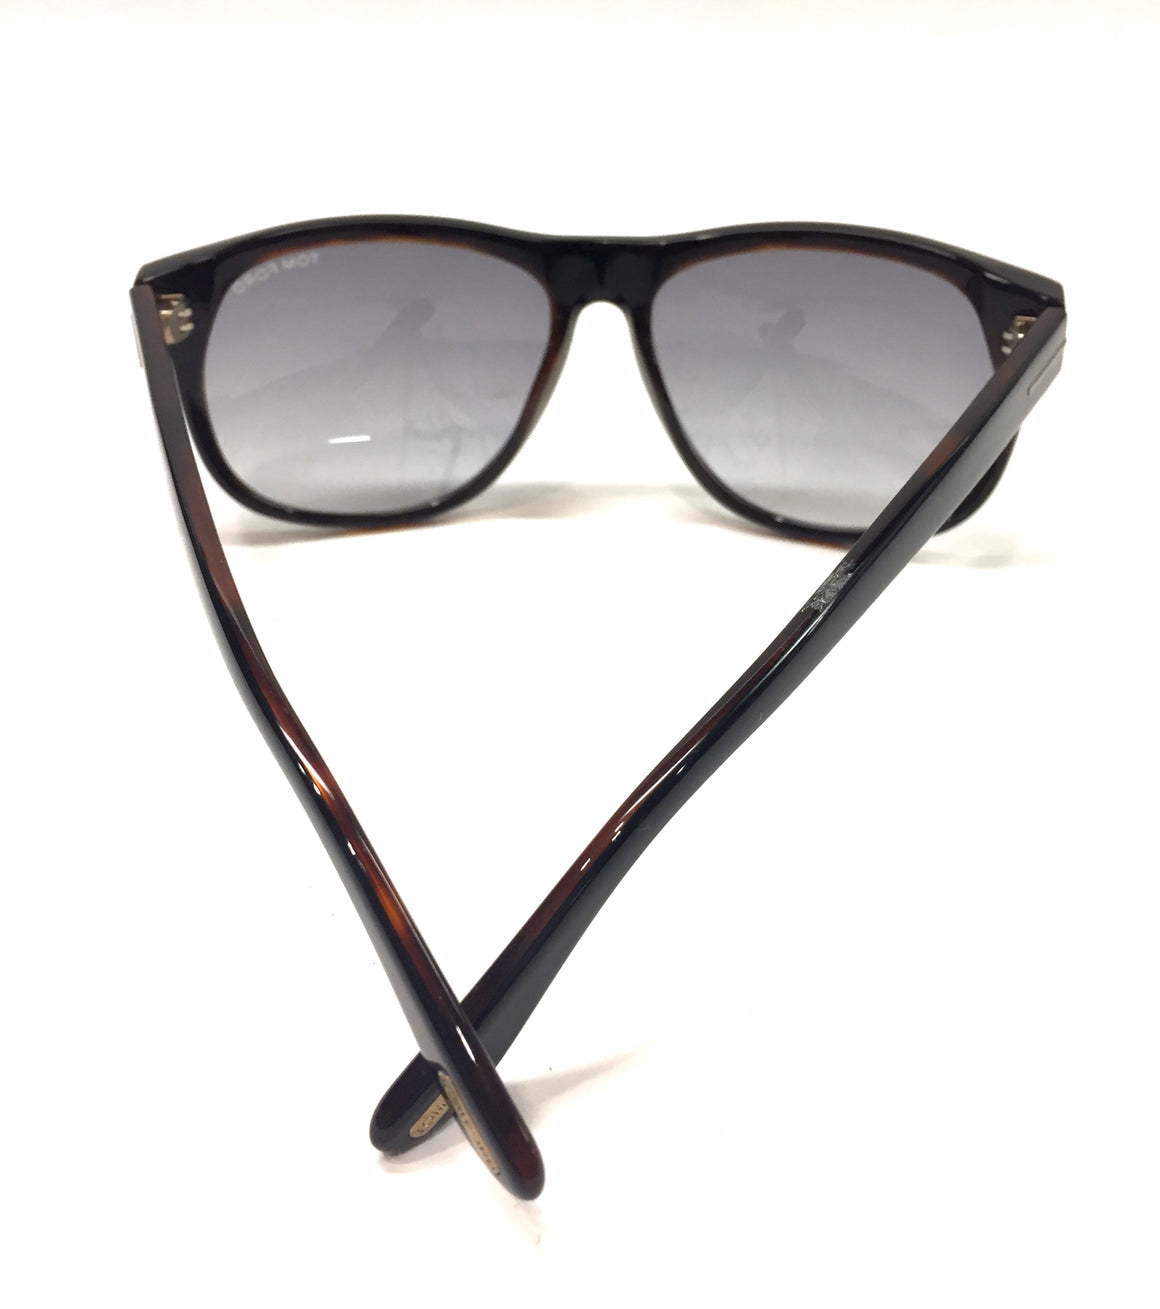 "TOM FORD Black/Moc-Tortoise Frame Dark-Gray Tint Lenses 'Olivier"" Sunglasses"